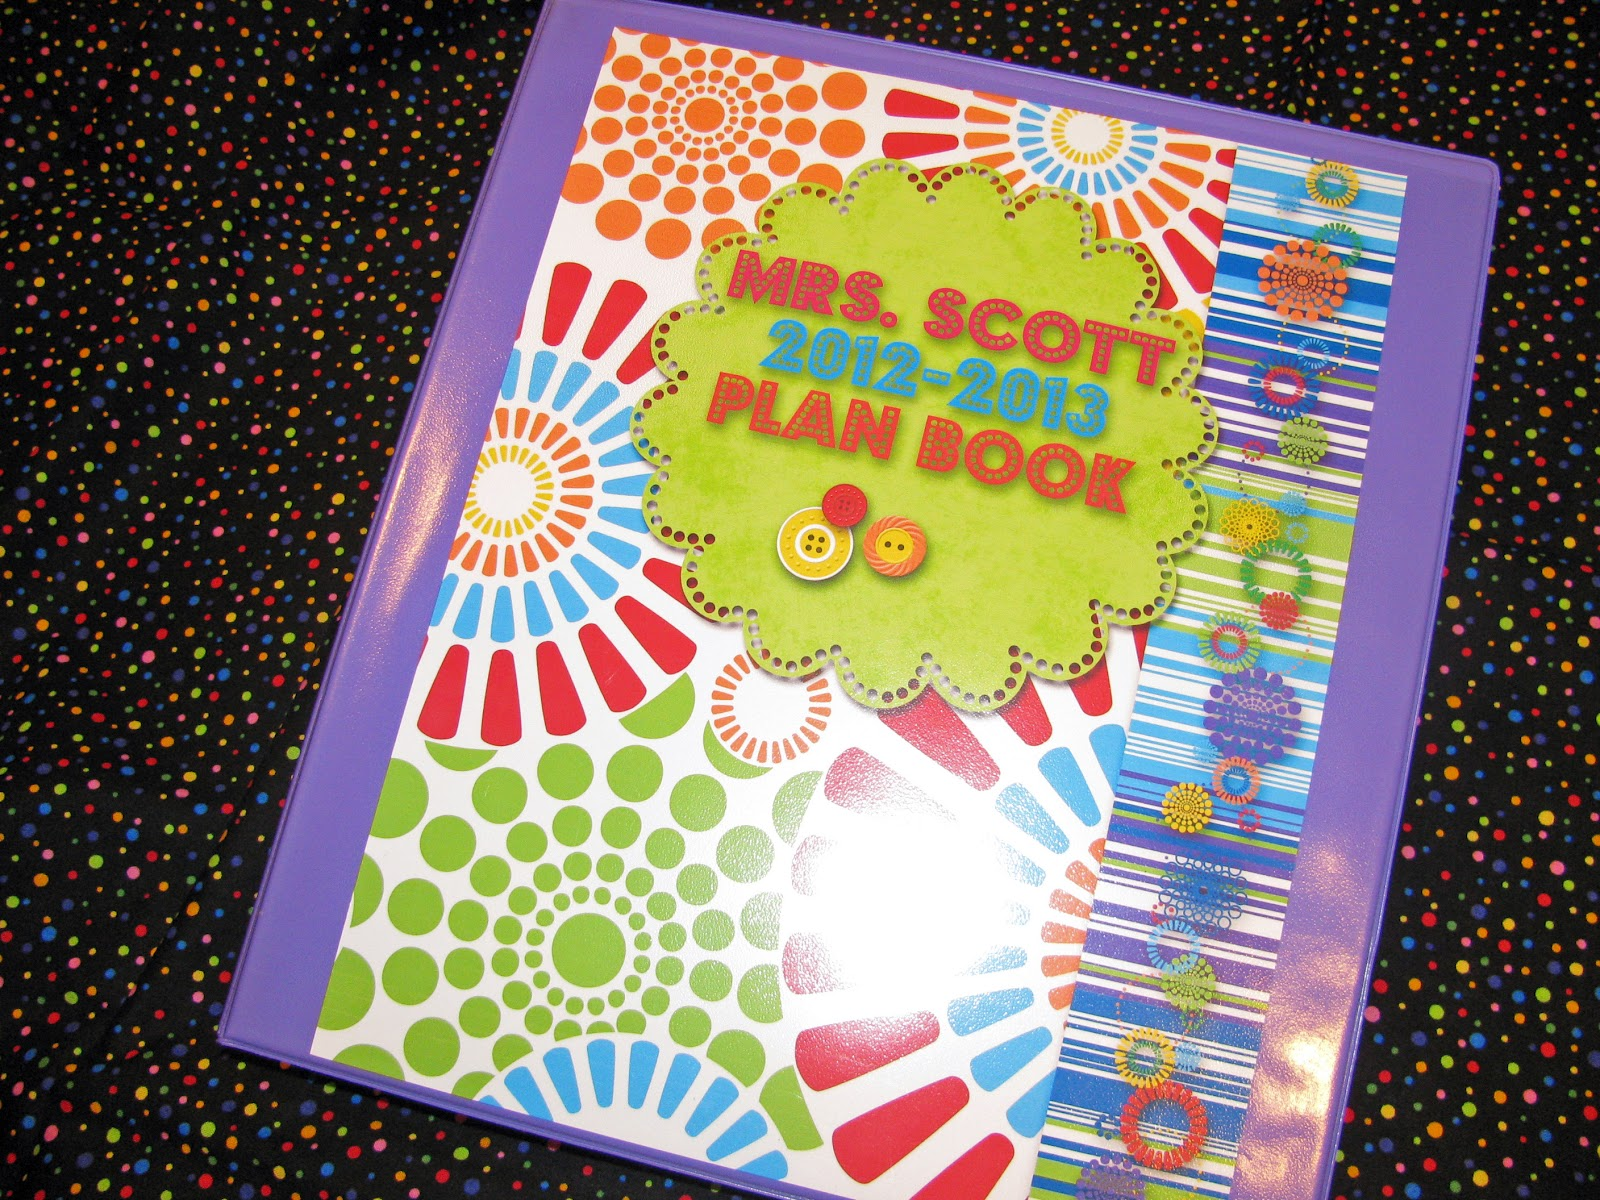 Controlling My Chaos Customized Plan Book And Grade Book